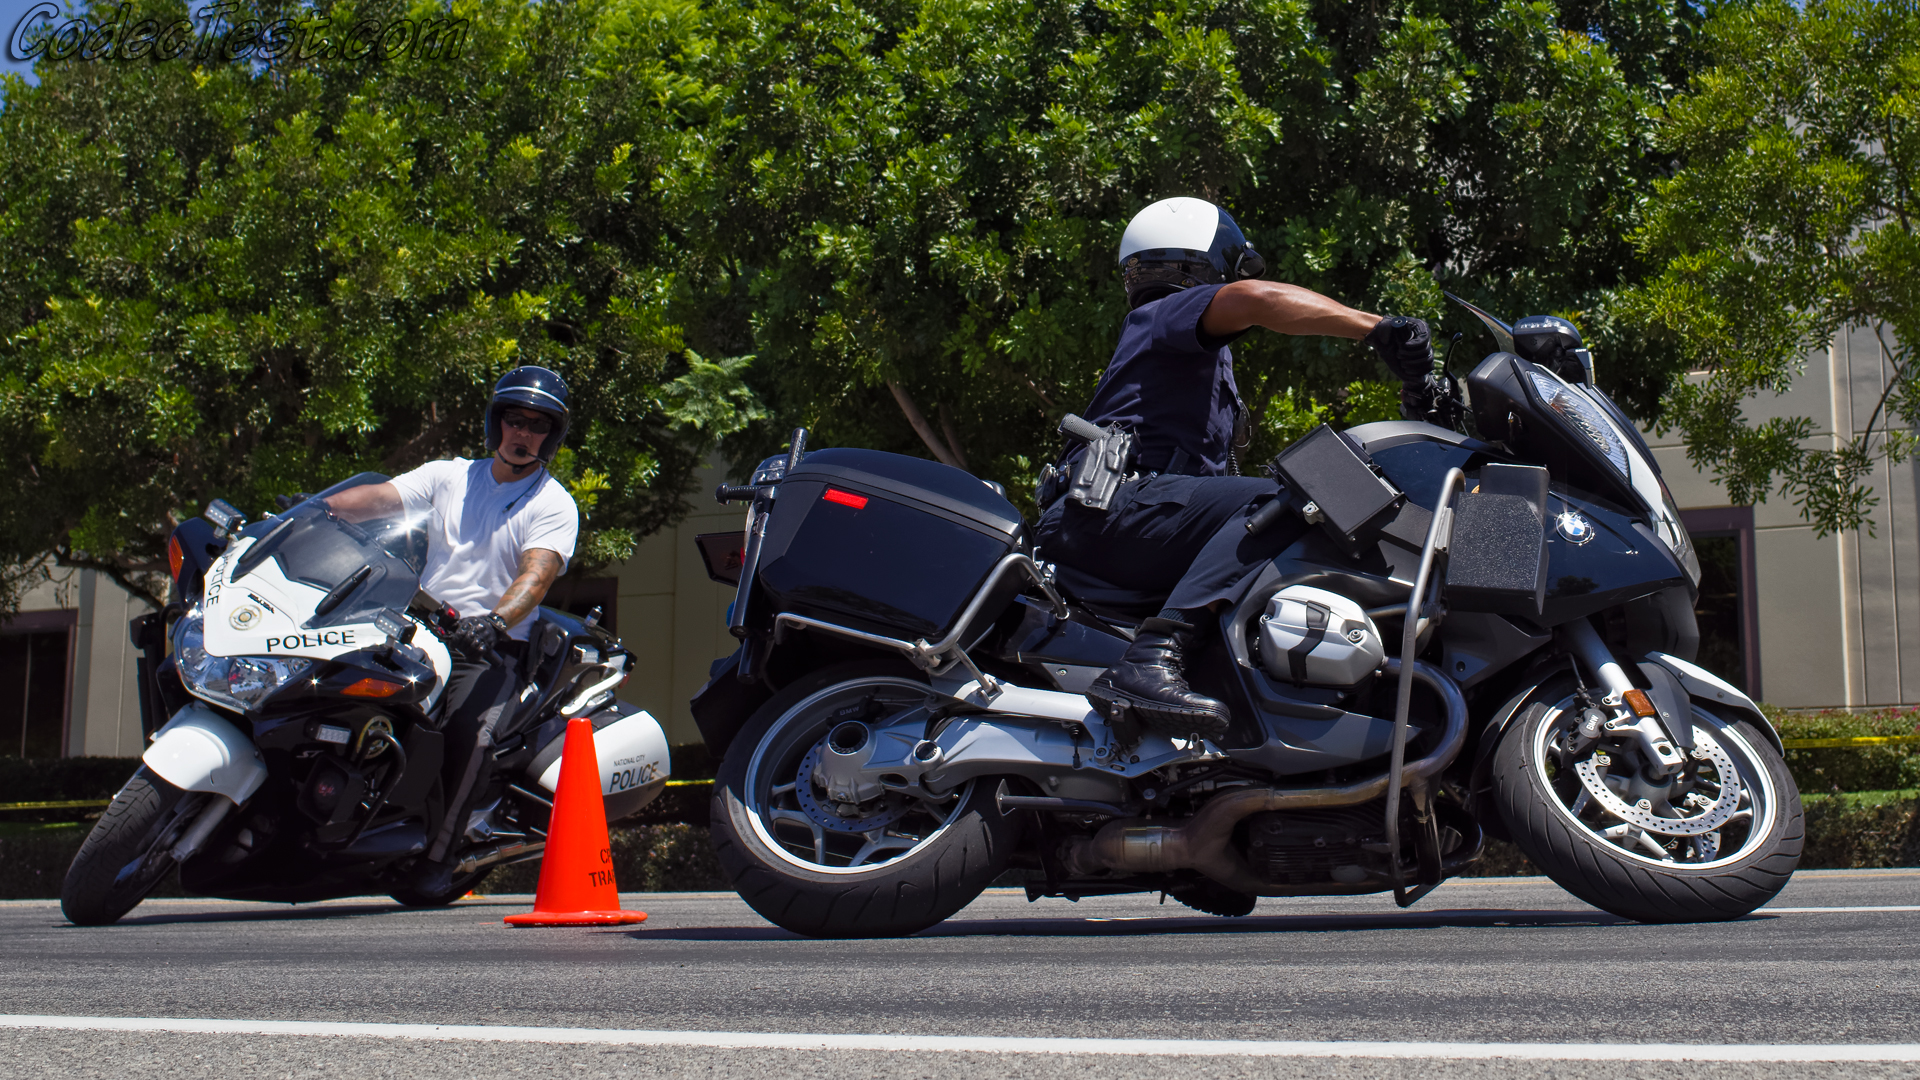 Honda National City >> 2014 Police Motorcycle Training & Competition Carlsbad CA